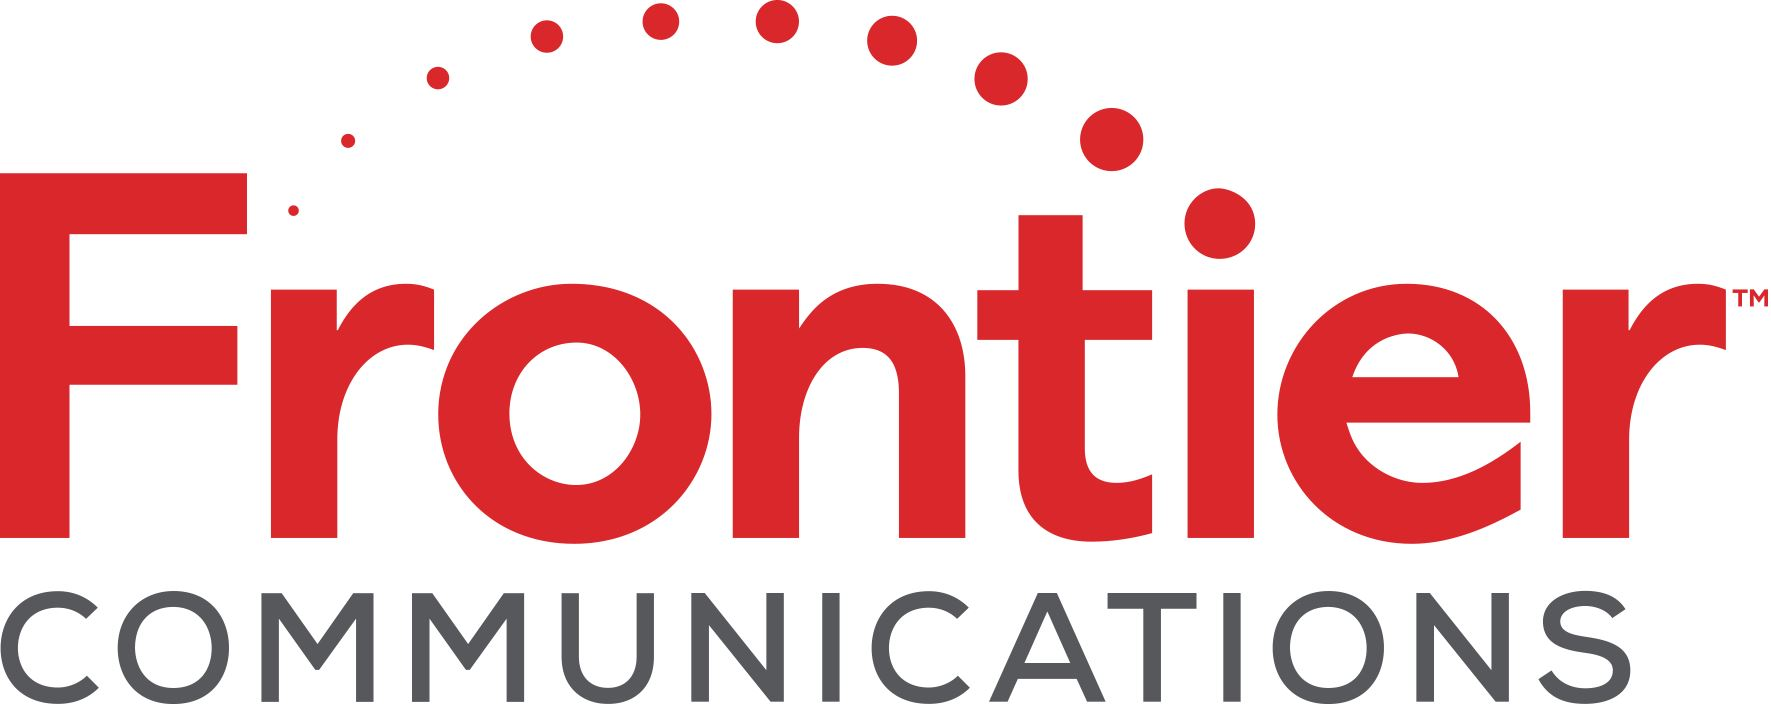 Frontier Communications Logo